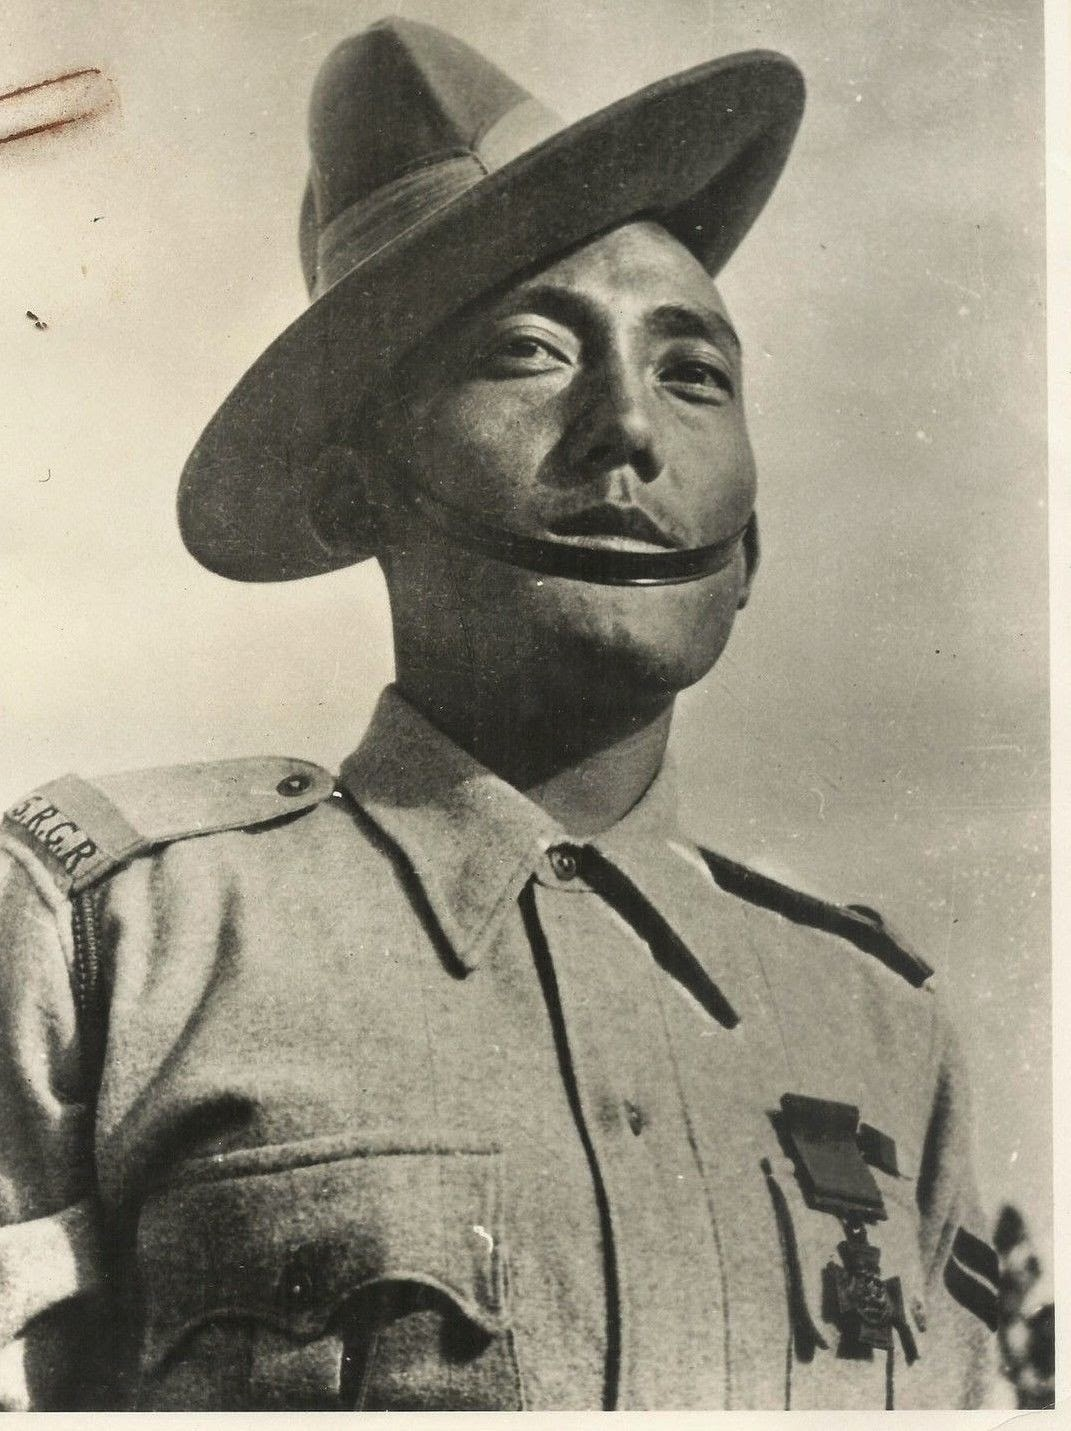 Portrait of an Indian Soldier, Press Information Bureau Photograph